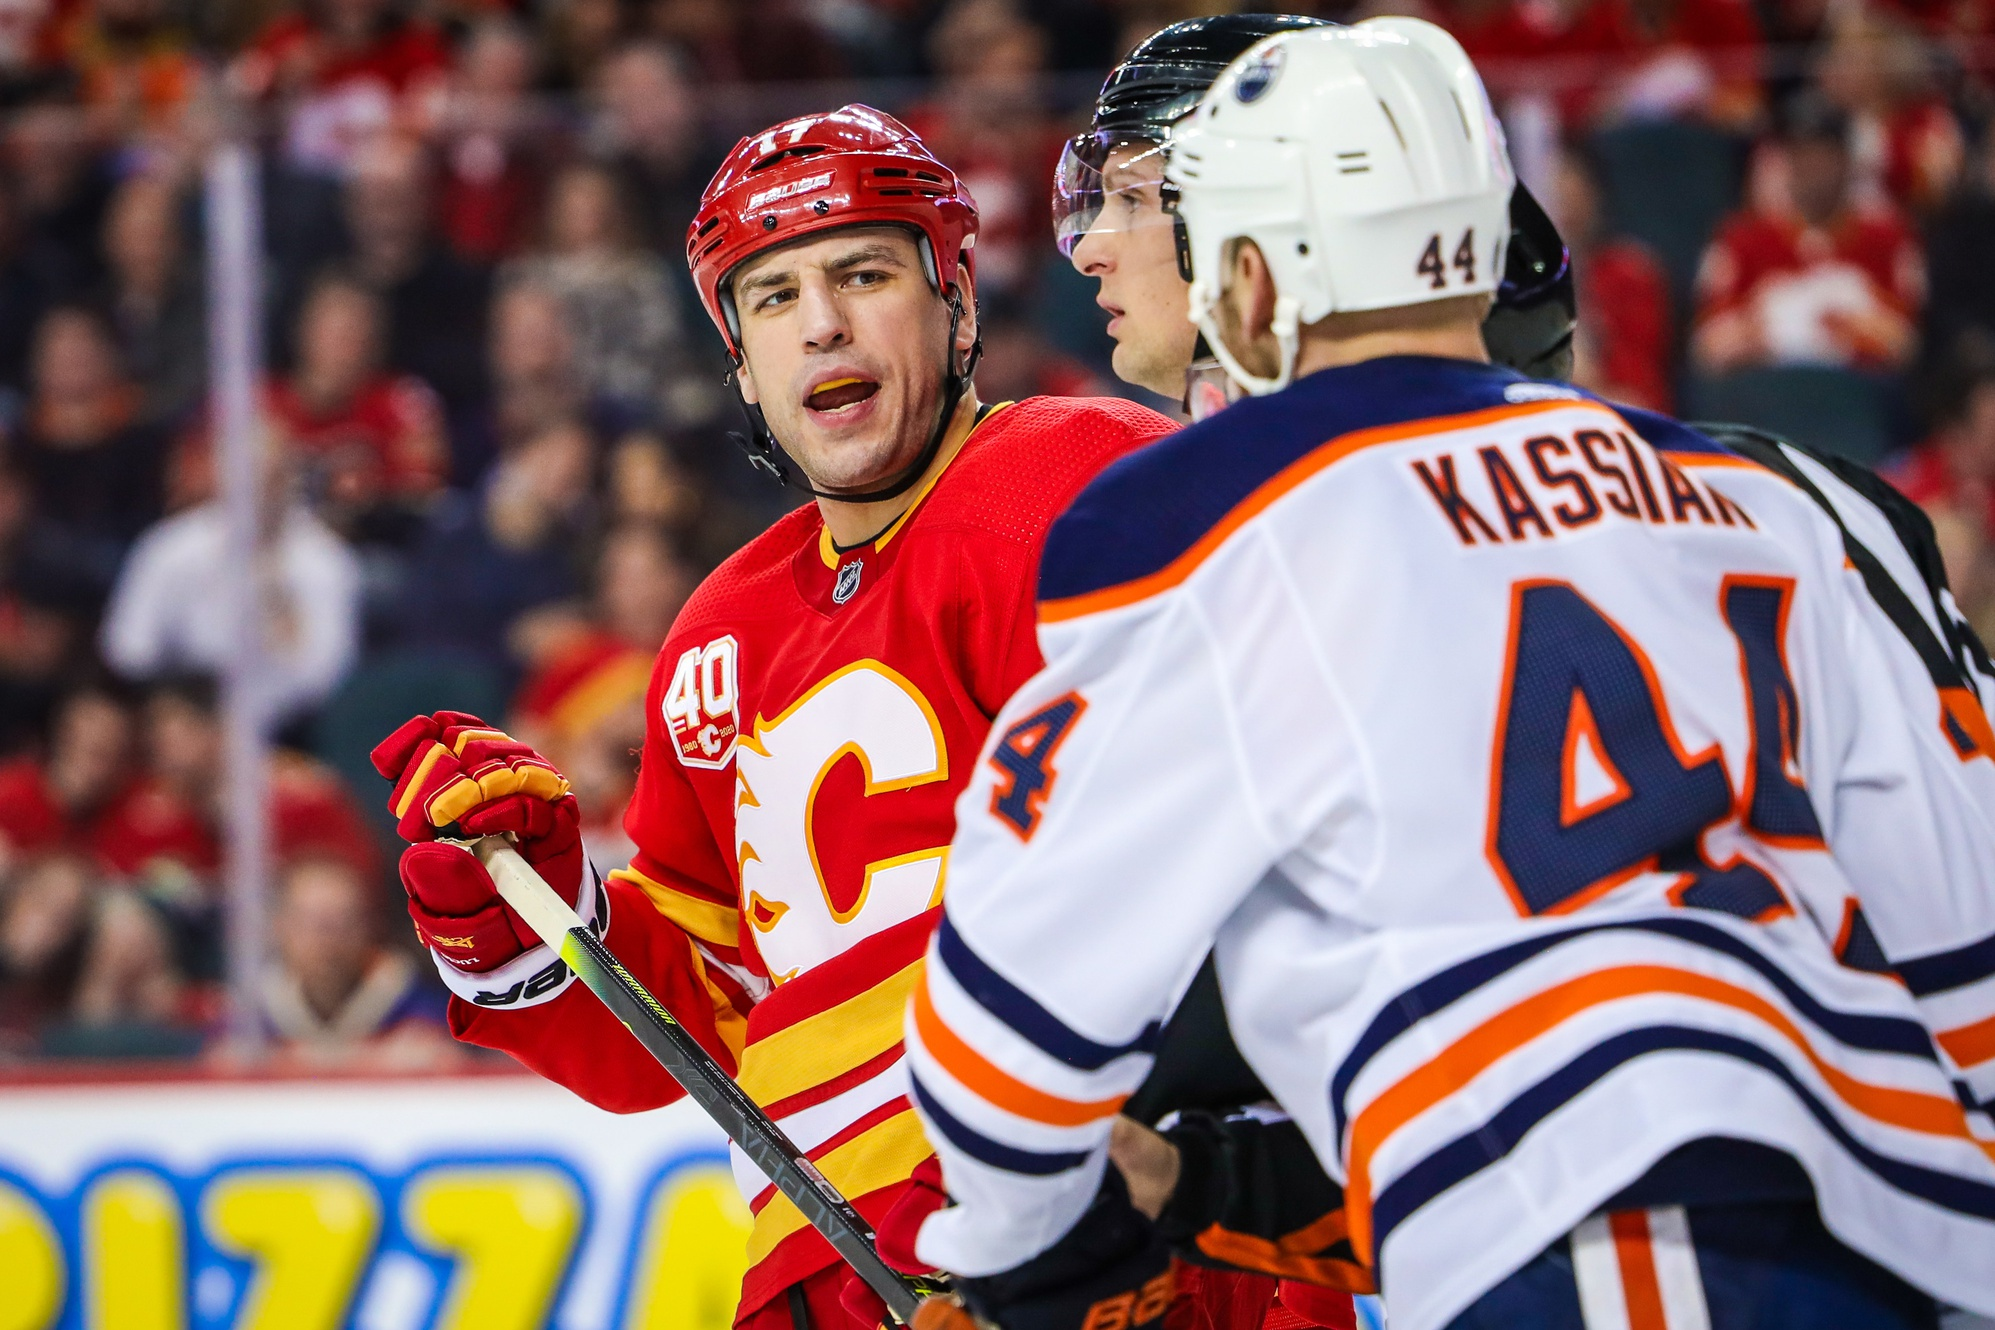 Flames At Oilers 01 29 20 Odds And Nhl Betting Trends